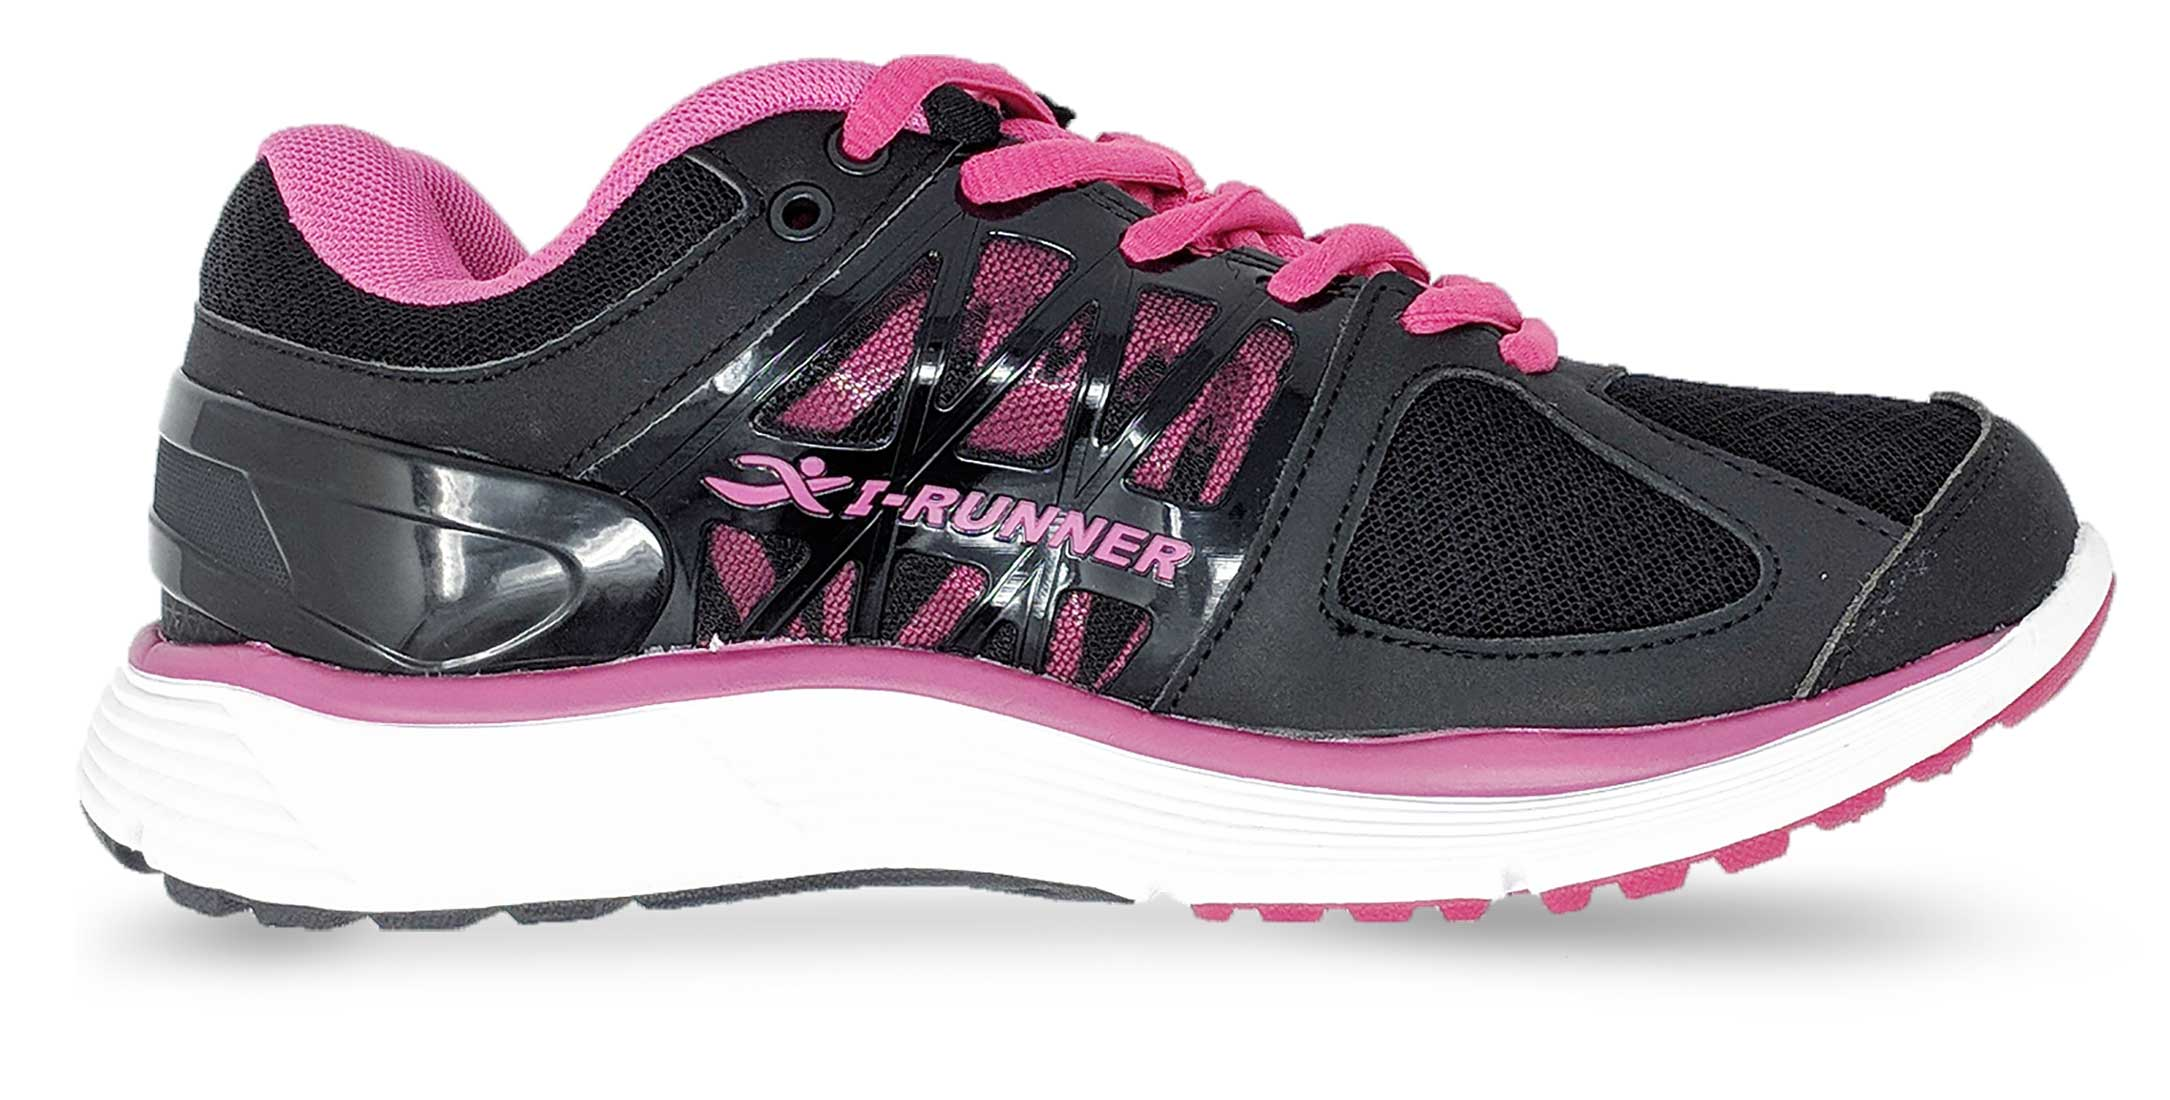 I-RUNNER Sophia - Athletic Walking Shoe